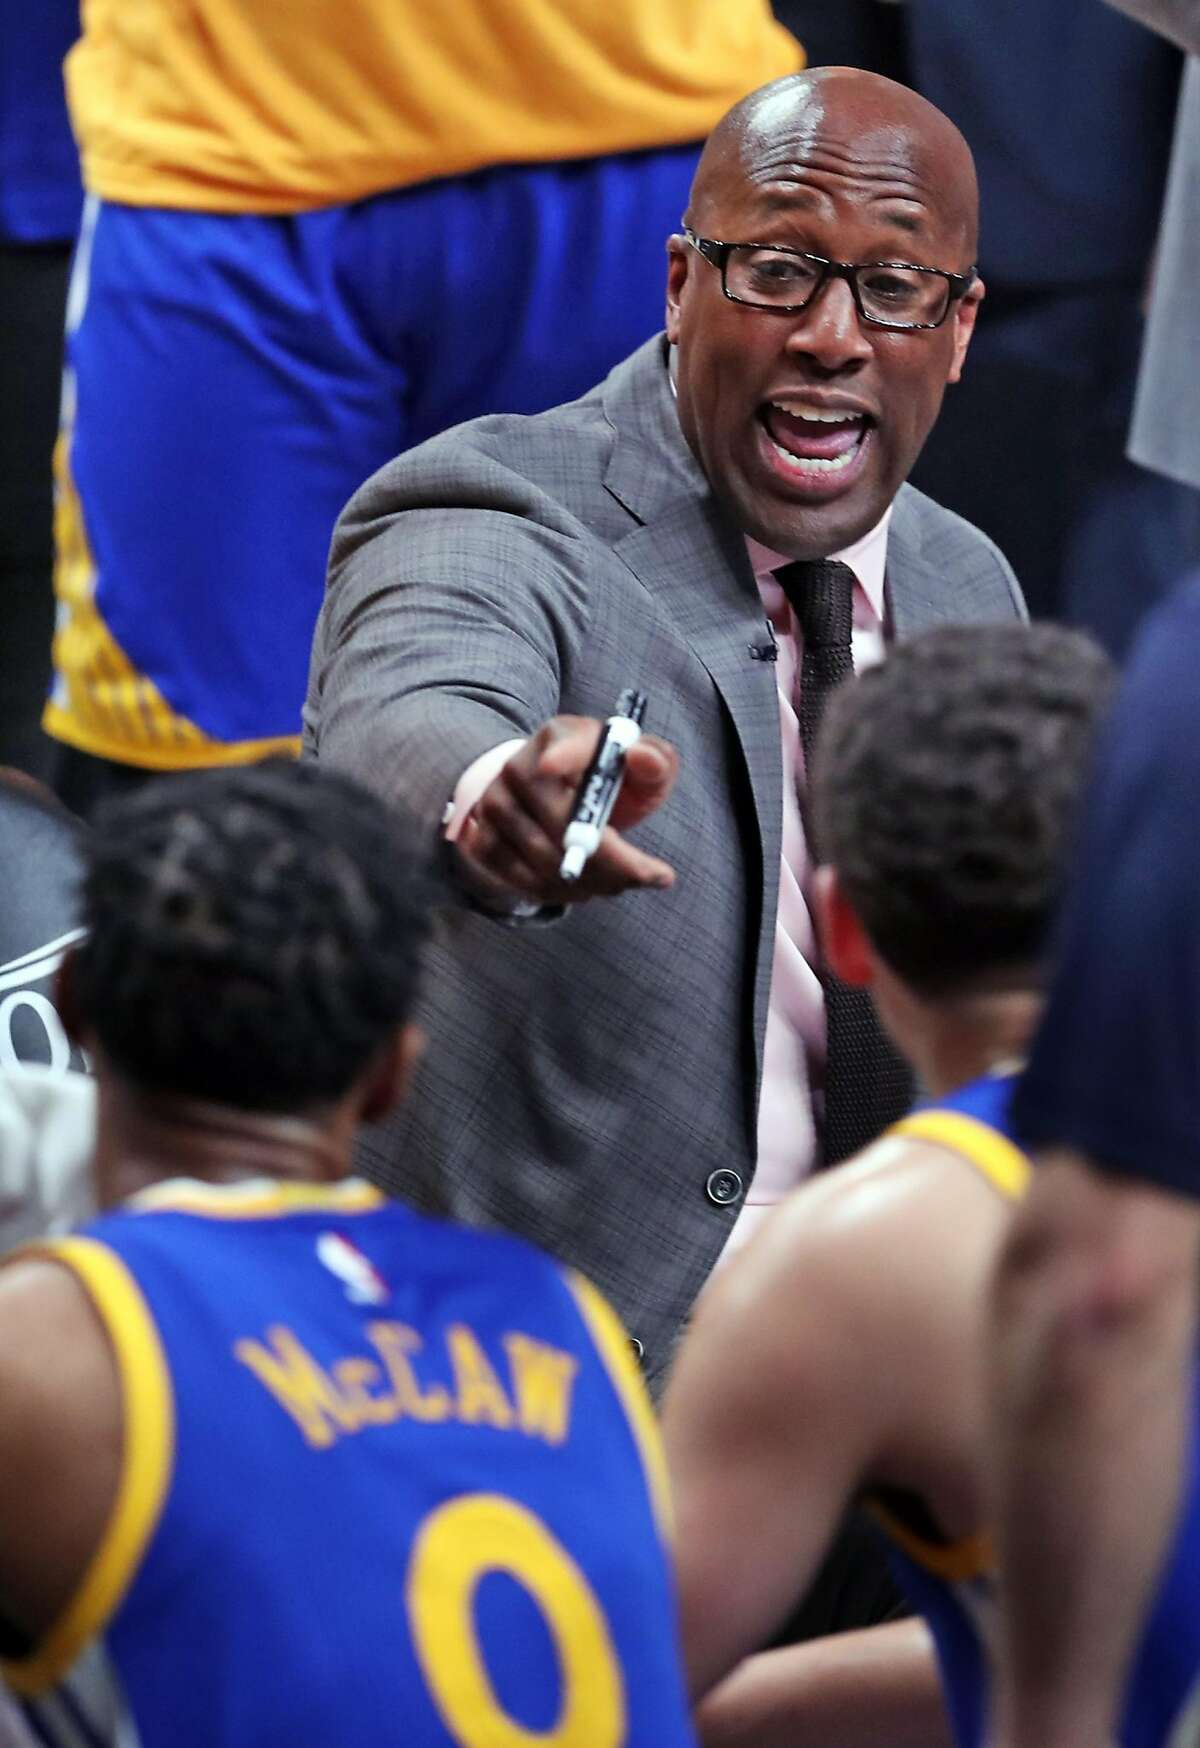 Golden State Warriors' Mike Brown during 119-113 win over Portland Trail Blazers in Game 3 of NBA Western Conference 1st Round Playoffs at Moda Center in Portland, Oregon on Saturday, April 22, 2017.